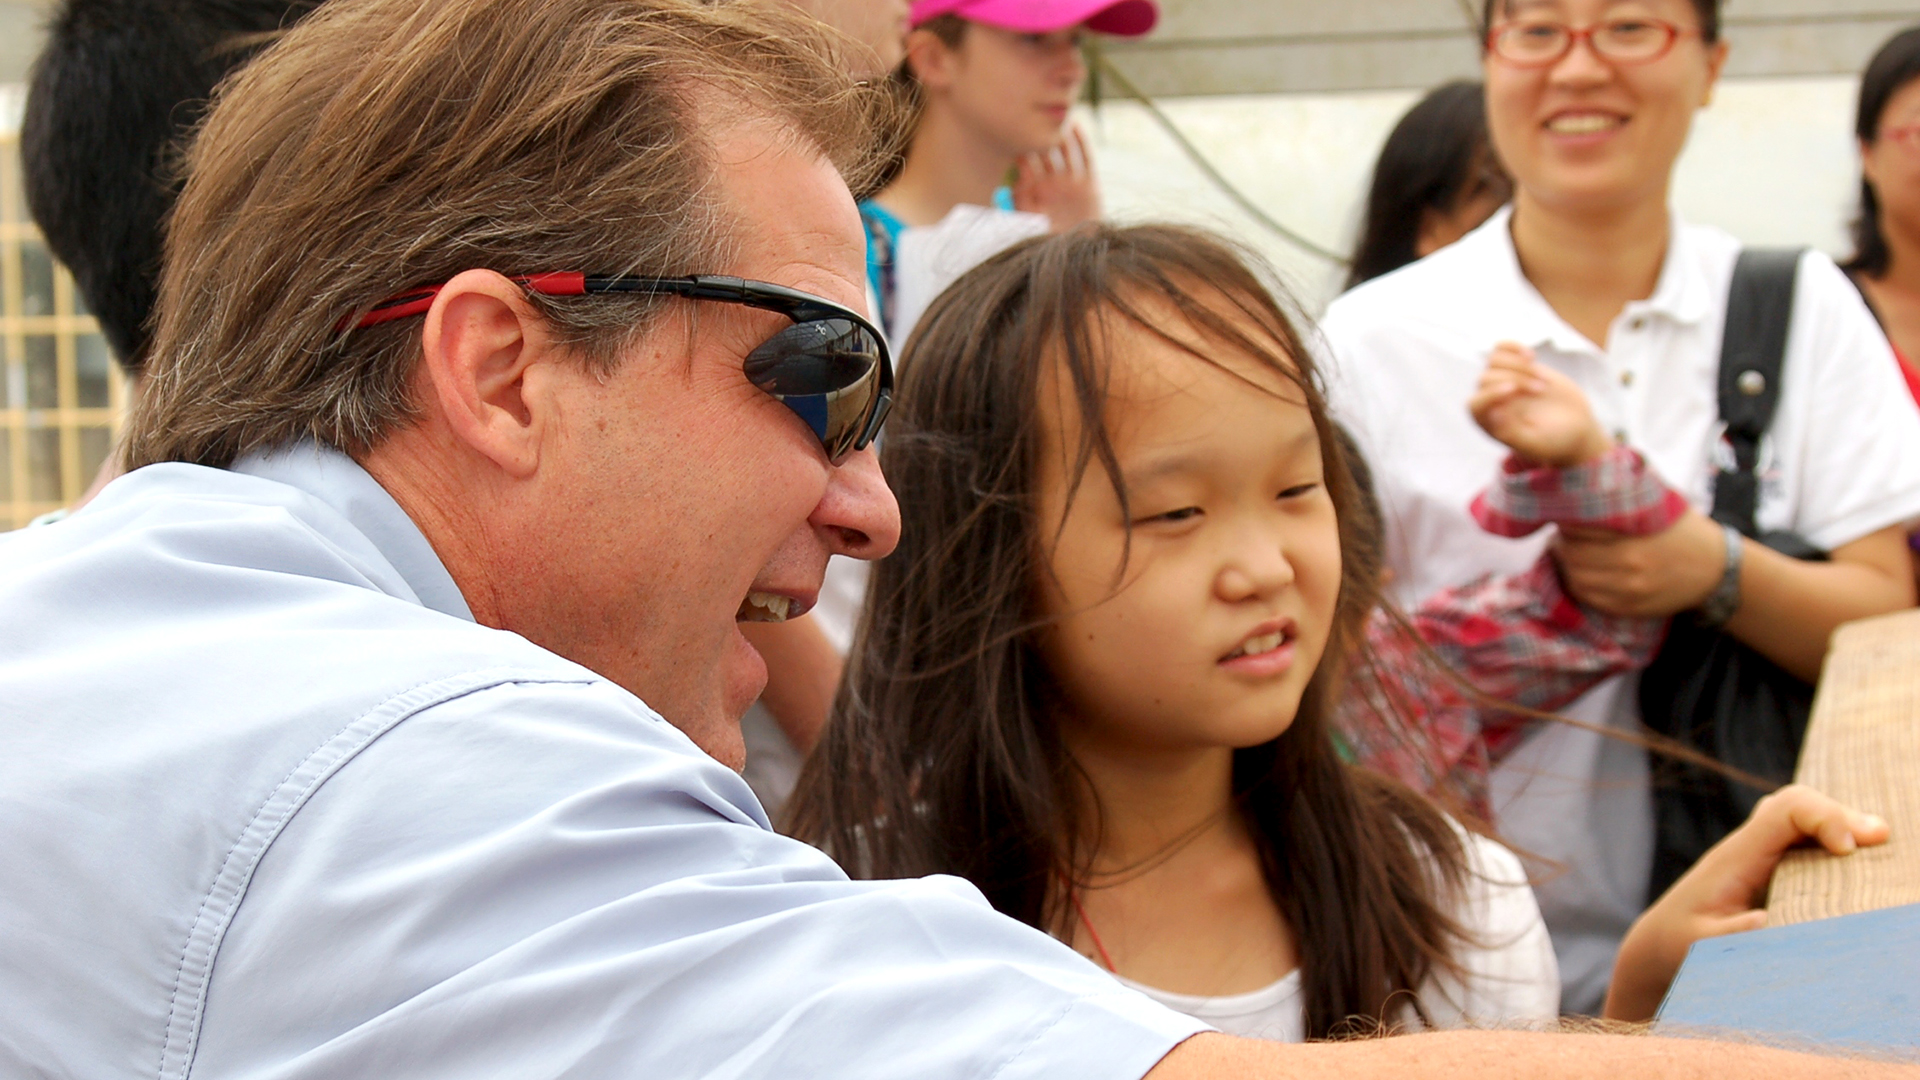 David-Cline-Mentoring-a-Student-Little-Asian-Girl-Learning-about-Aquaculture-and-Fish-EW-Shell-Fisheries-Center-Auburn-AL-0269